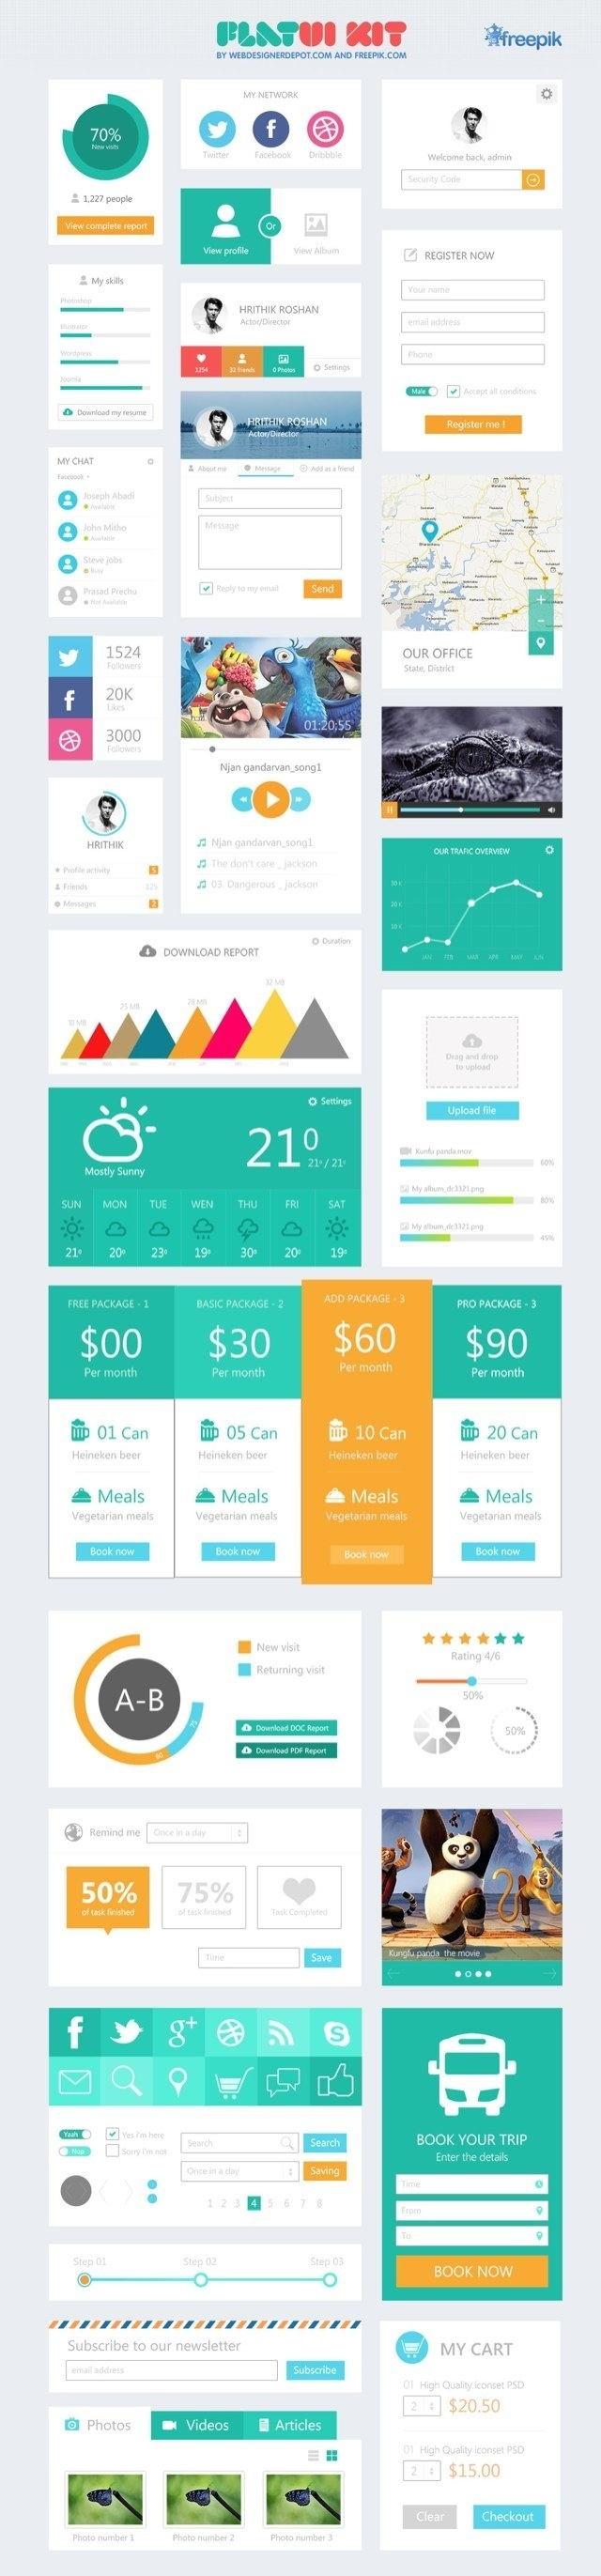 67 best Flat UI images on Pinterest | Interface design, App design ...